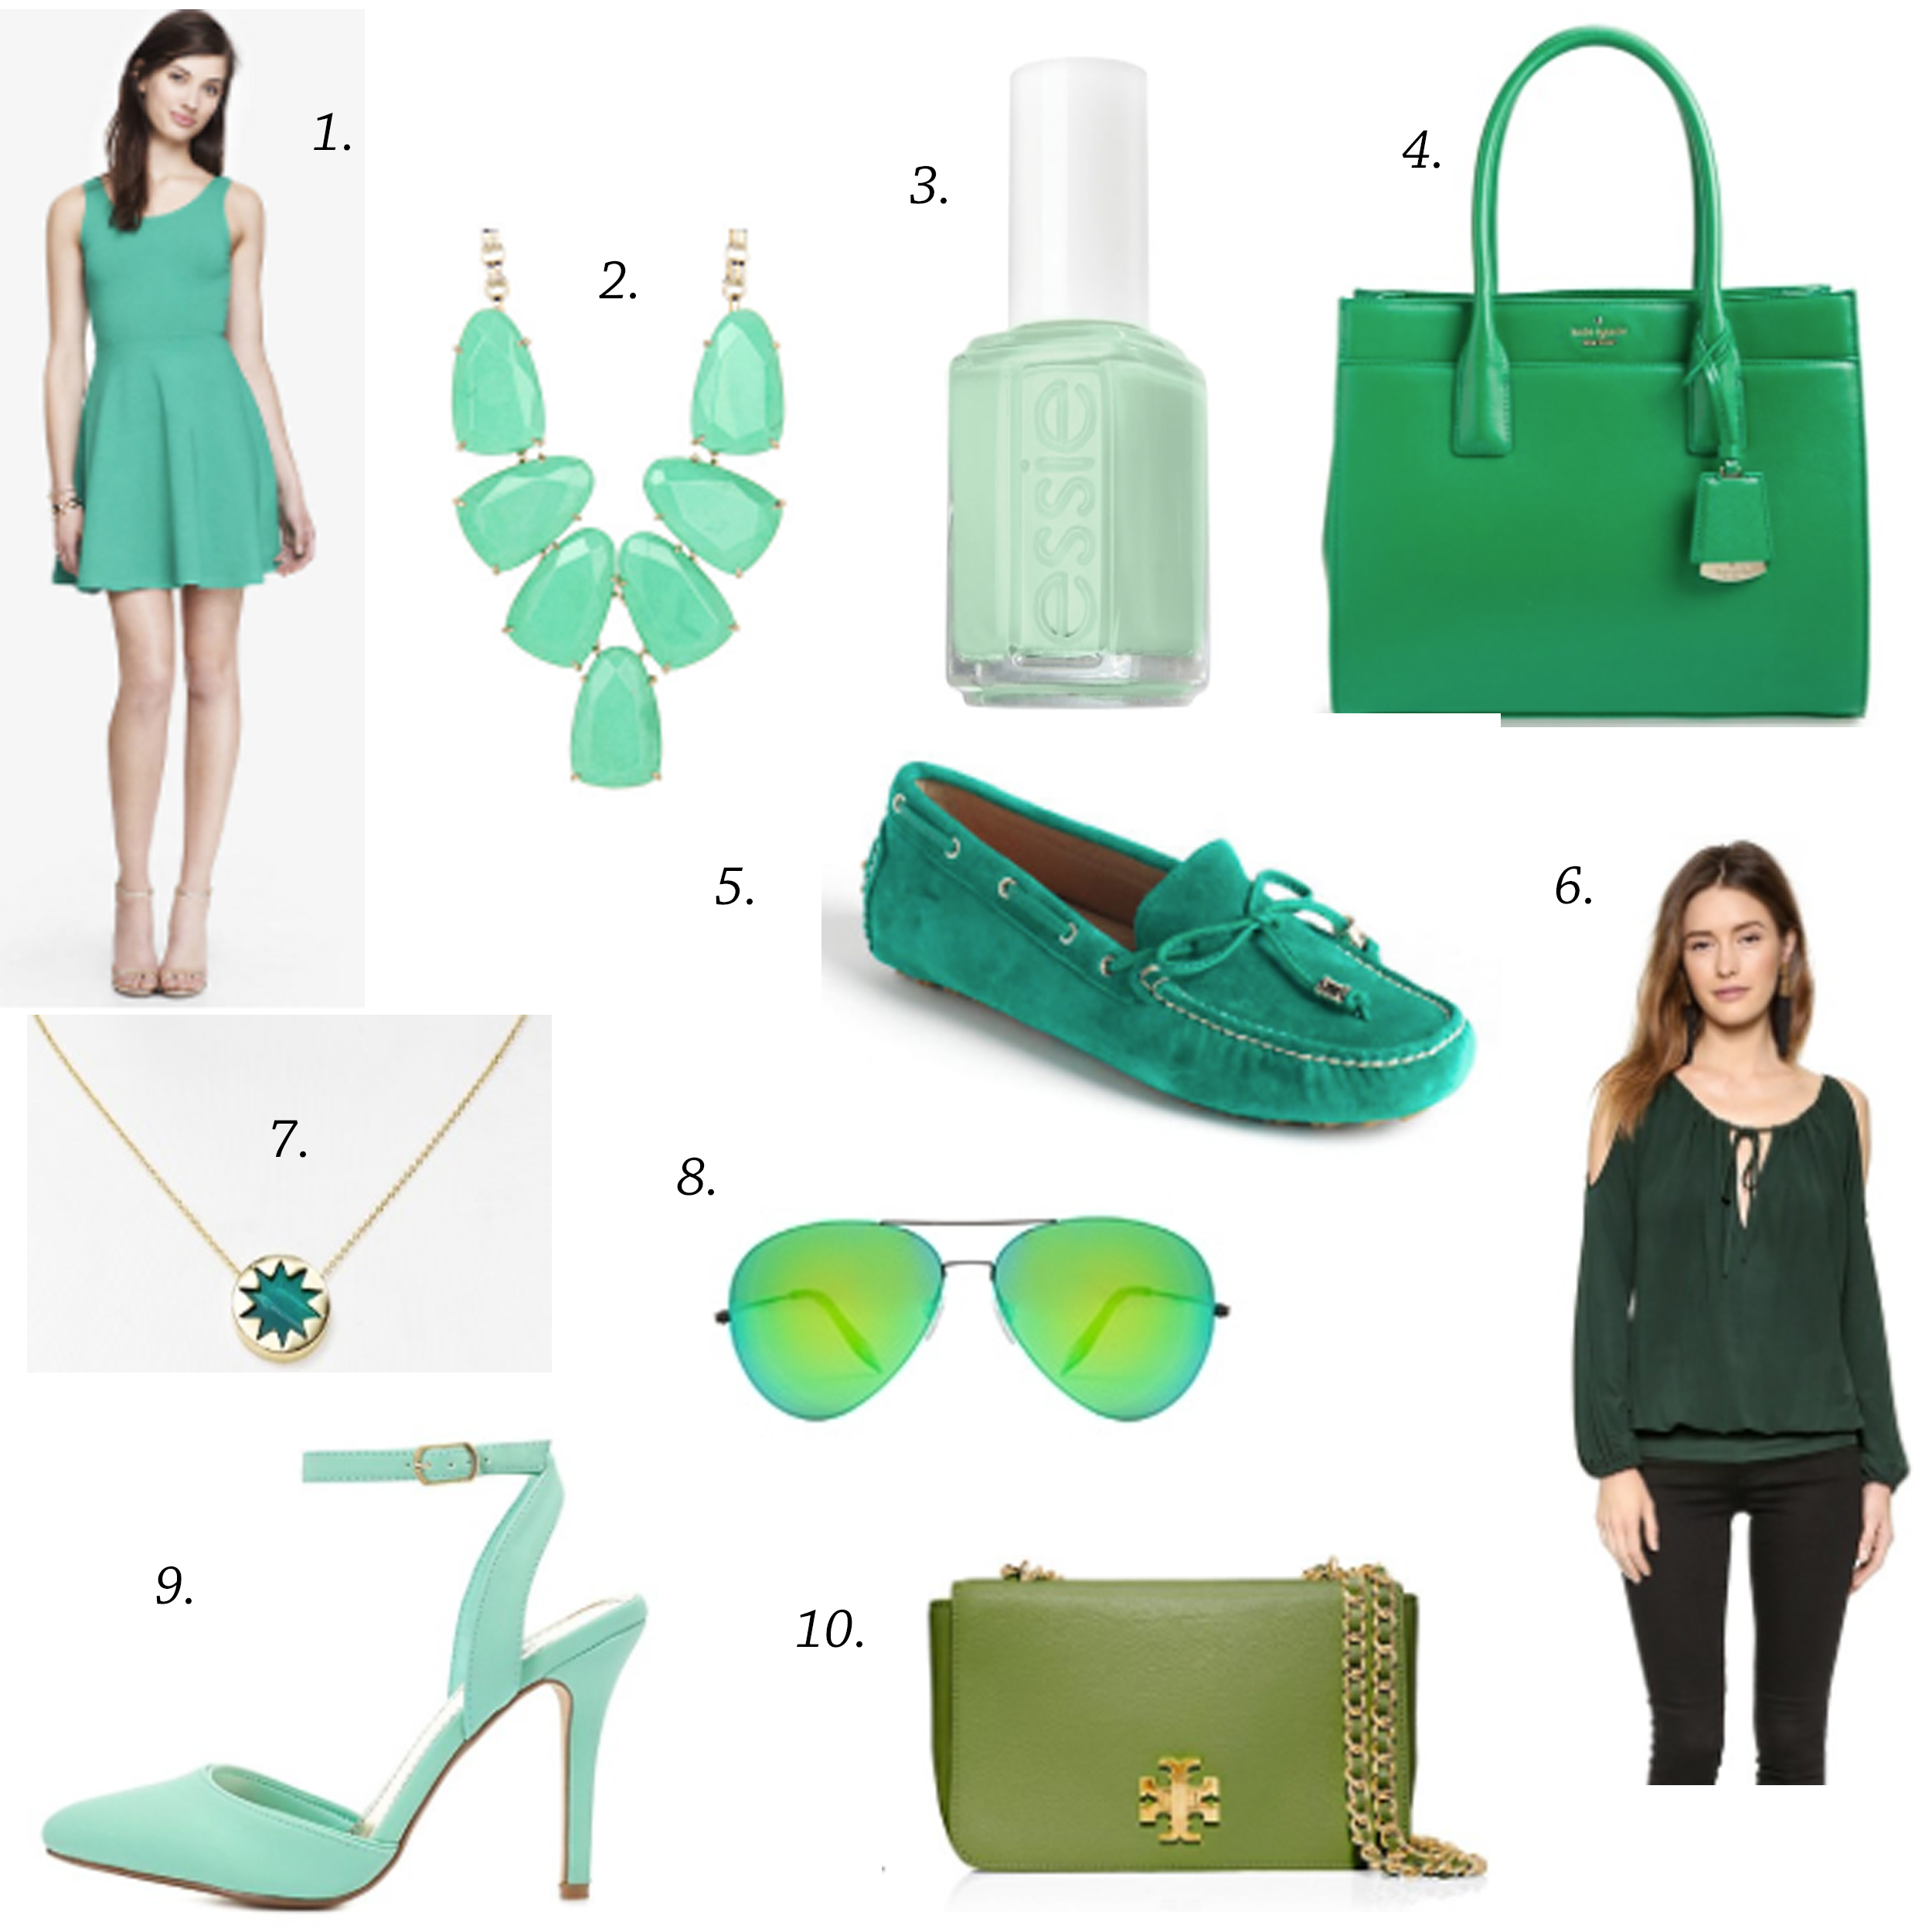 greenguide missyonmadison blog blogger greensatchel katespadetote katespadesatchel greendrivingloafers greenshoes greenhandbag greenbag expressdress greendress greenblouse shopbopblouse greenaviators victoriabeckhamsunglasses charlotterusse greensandals houseofharlownecklace greennecklace kendrascott kendrascottnecklace essie essienailpolish mintcandyapple greennailpolish longislandblogger spring springstyle springshoppingguide springtrends greenforspring